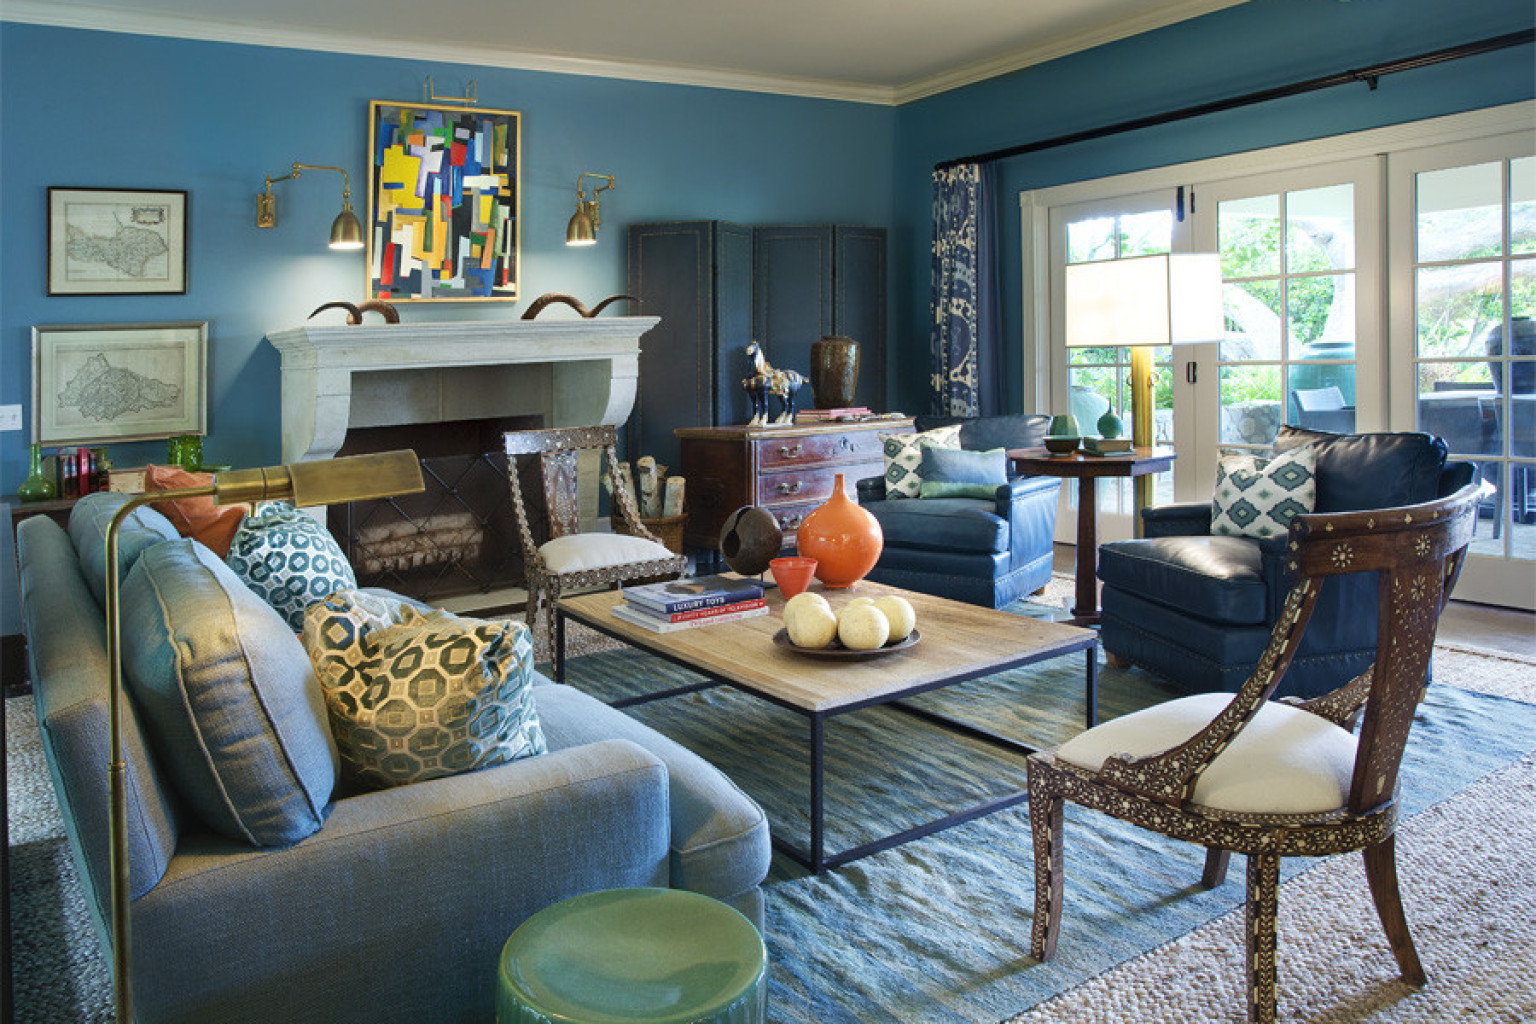 designer showhouse take a tour of the santa barbara design house and gardens photos huffpost On designers home